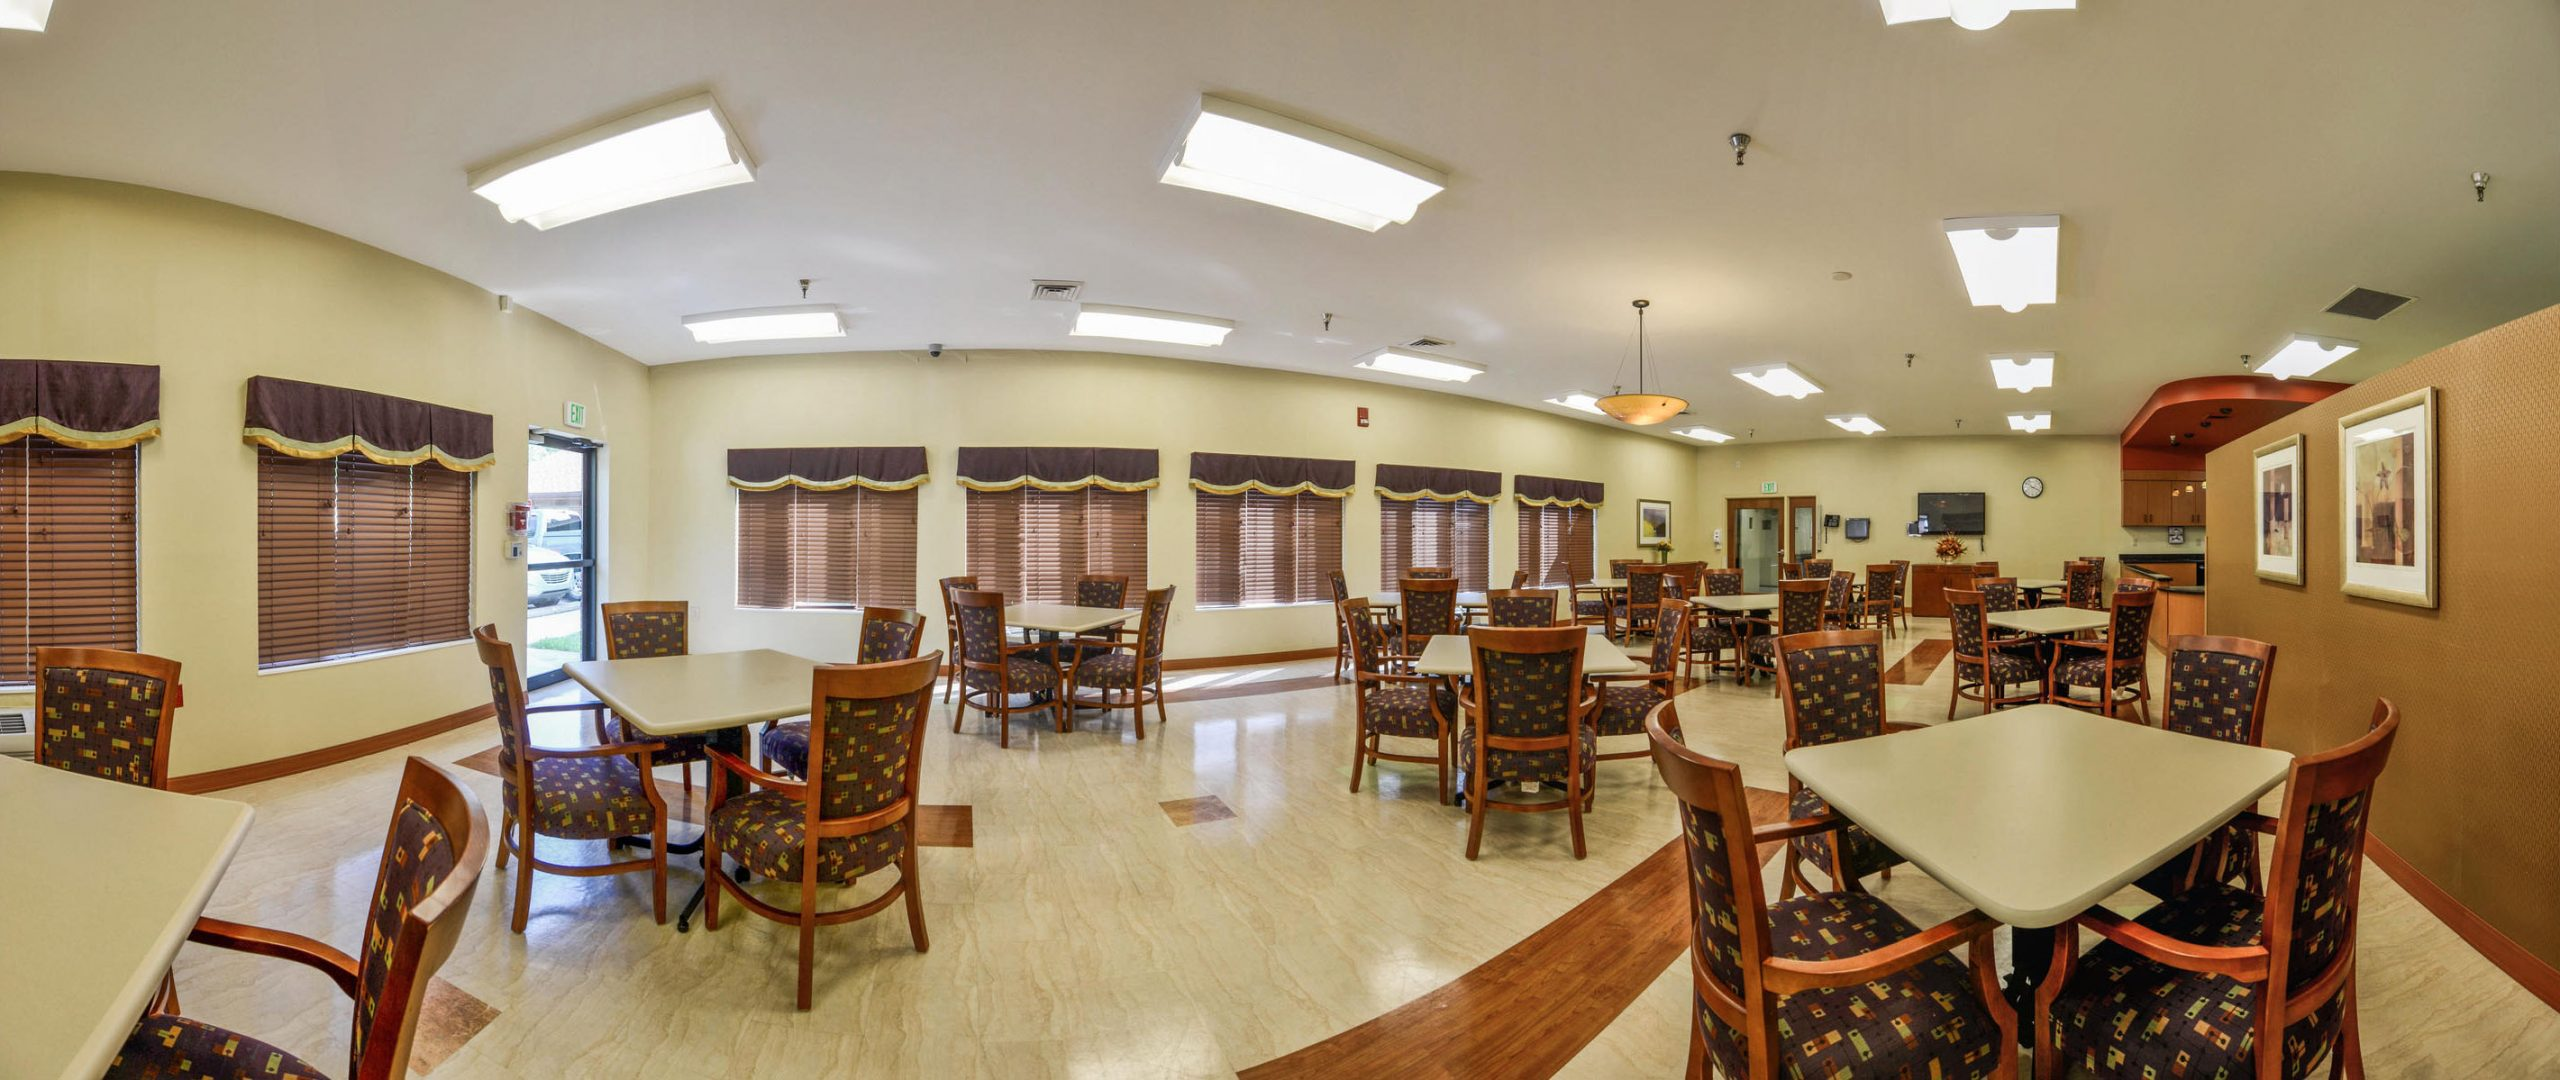 Panoramic view of Stonerise Clarksburg dining room with TV and windows